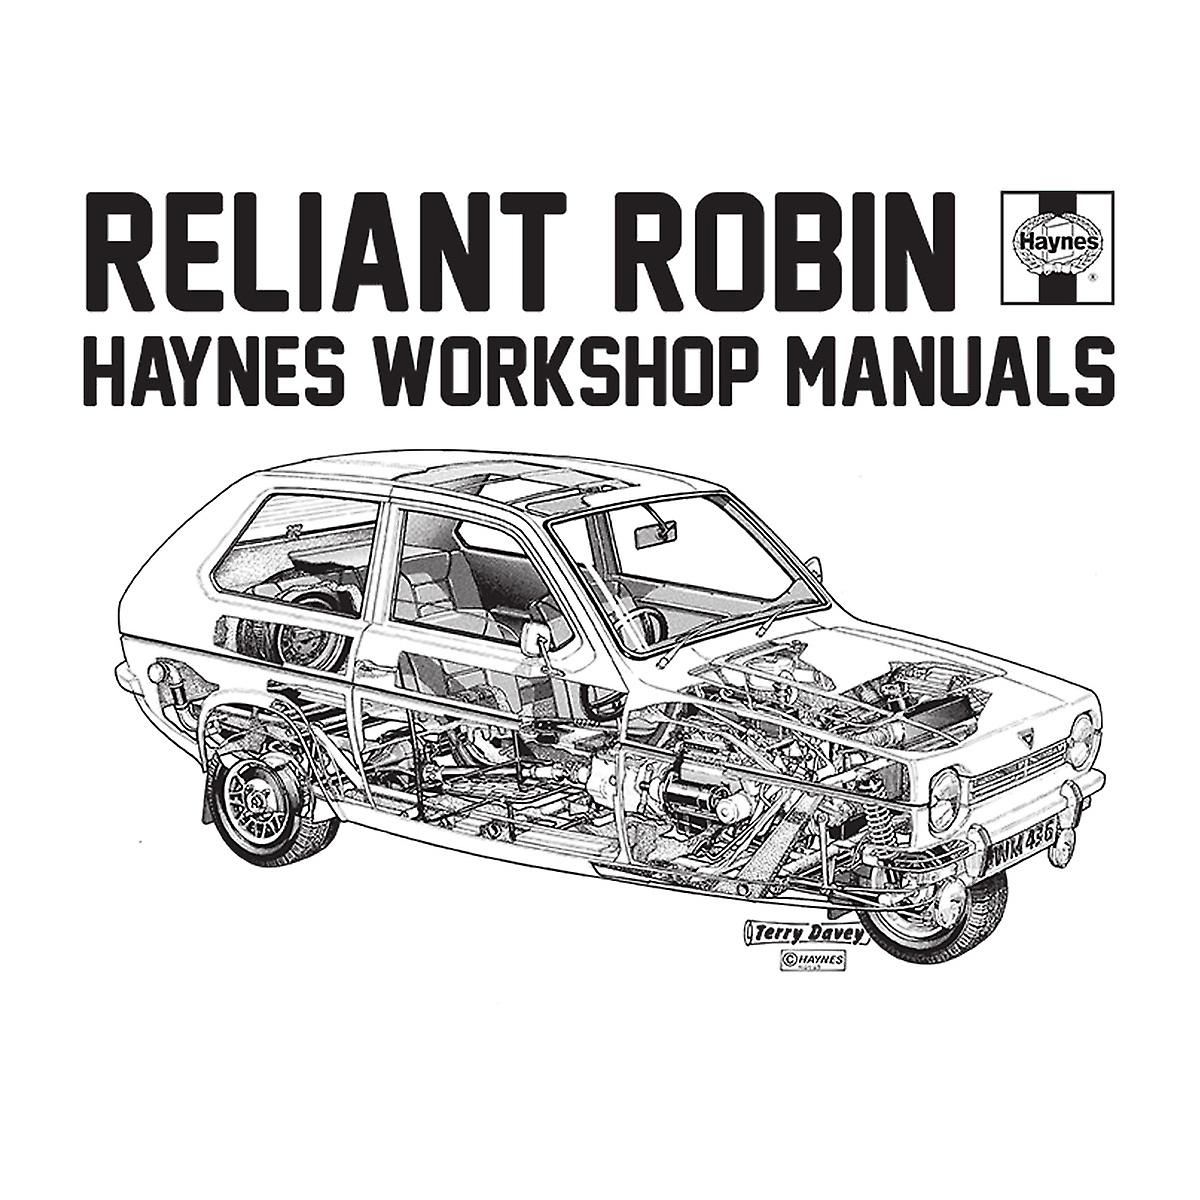 Haynes Workshop Manual Reliant Robin Black Women's T-Shirt